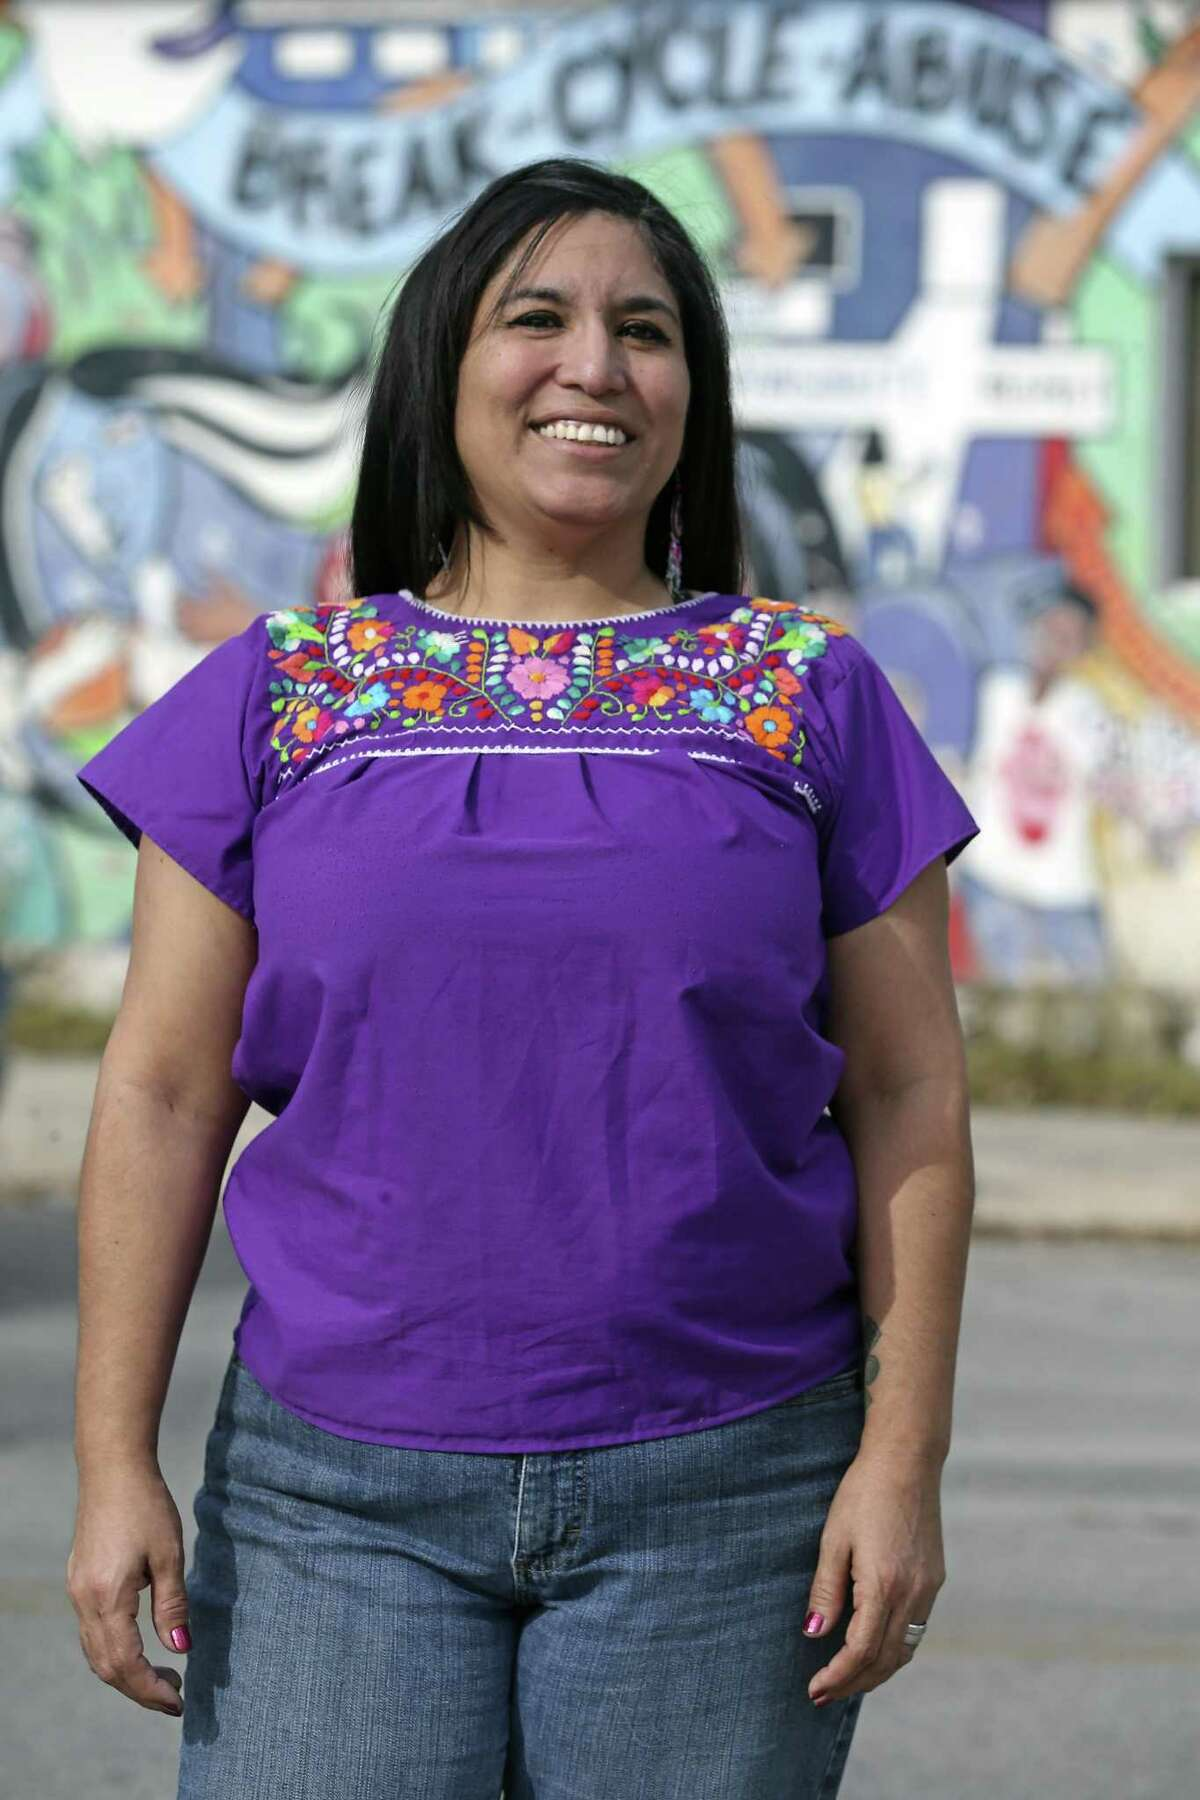 Alexandra Gonzalez was left deeply traumatized after she was attacked by her boyfriend nearly five years ago. Now, she volunteers to help other women who are victims of domestic violence.